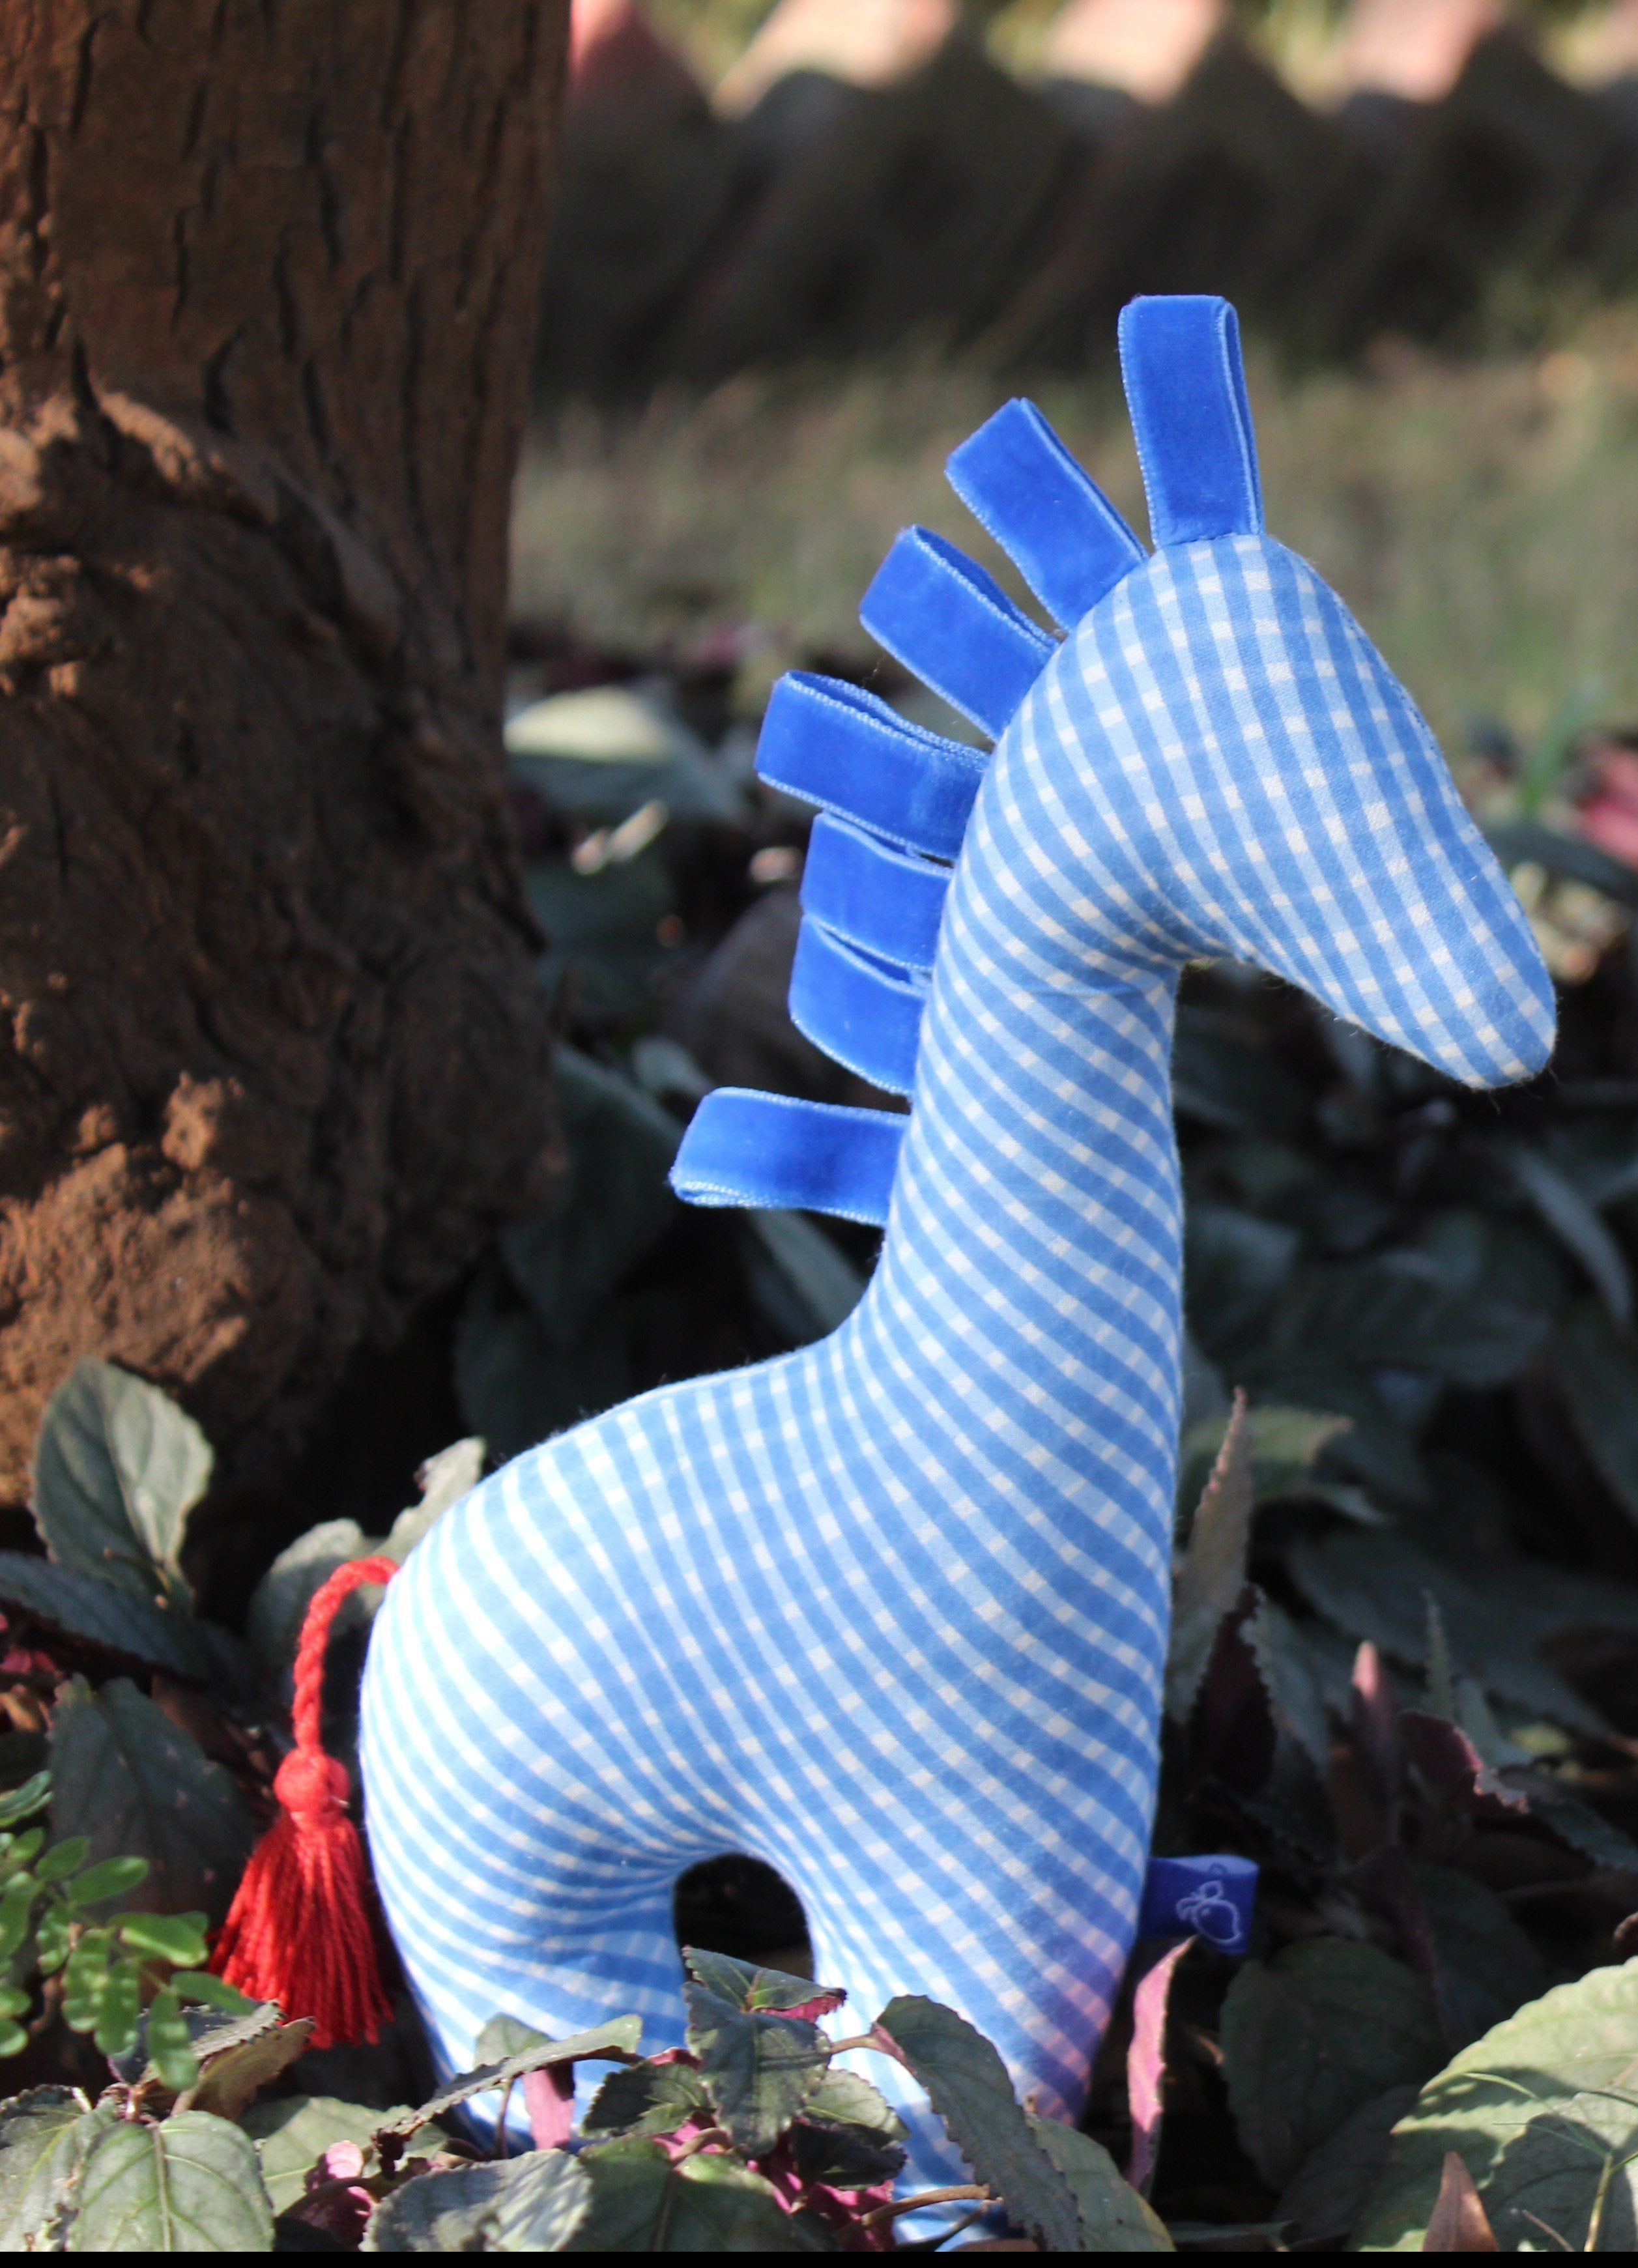 Blue colored handmade in India giraffe plush toy